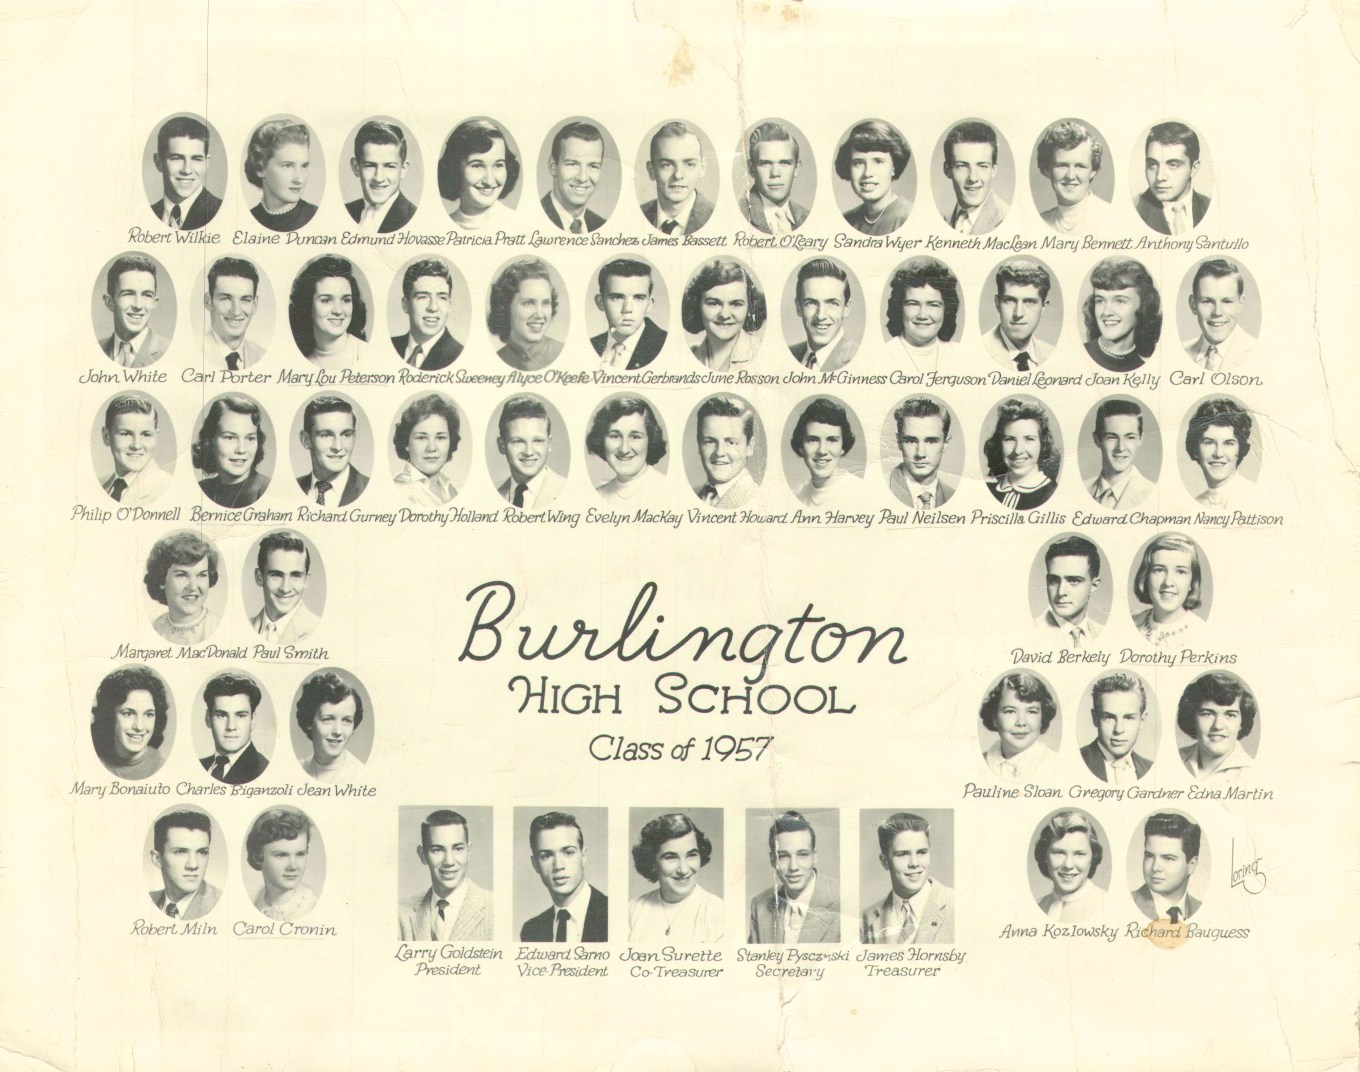 1957 high school class picture